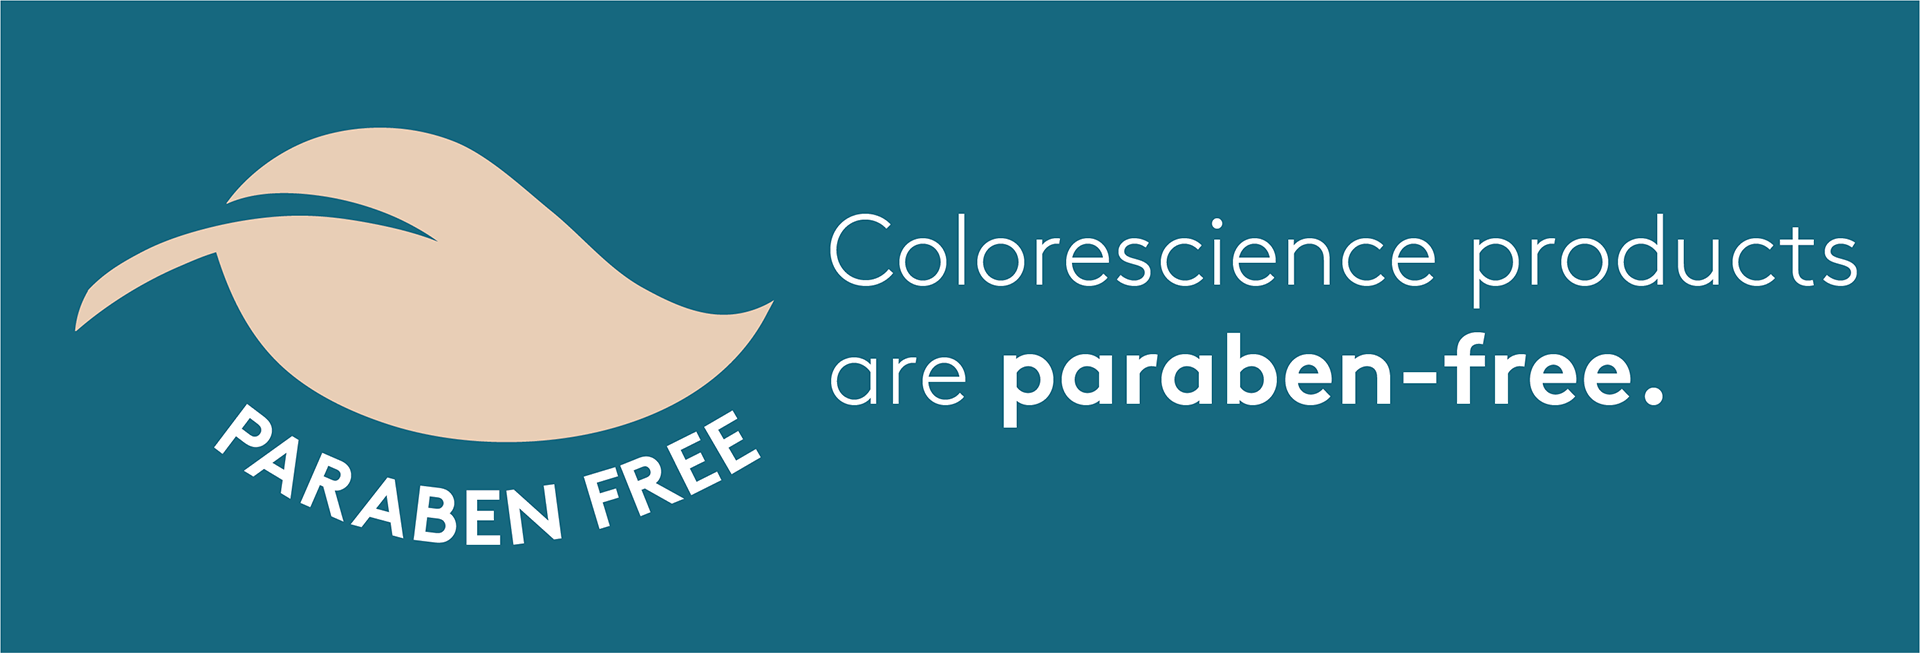 Colorescience products paraben free